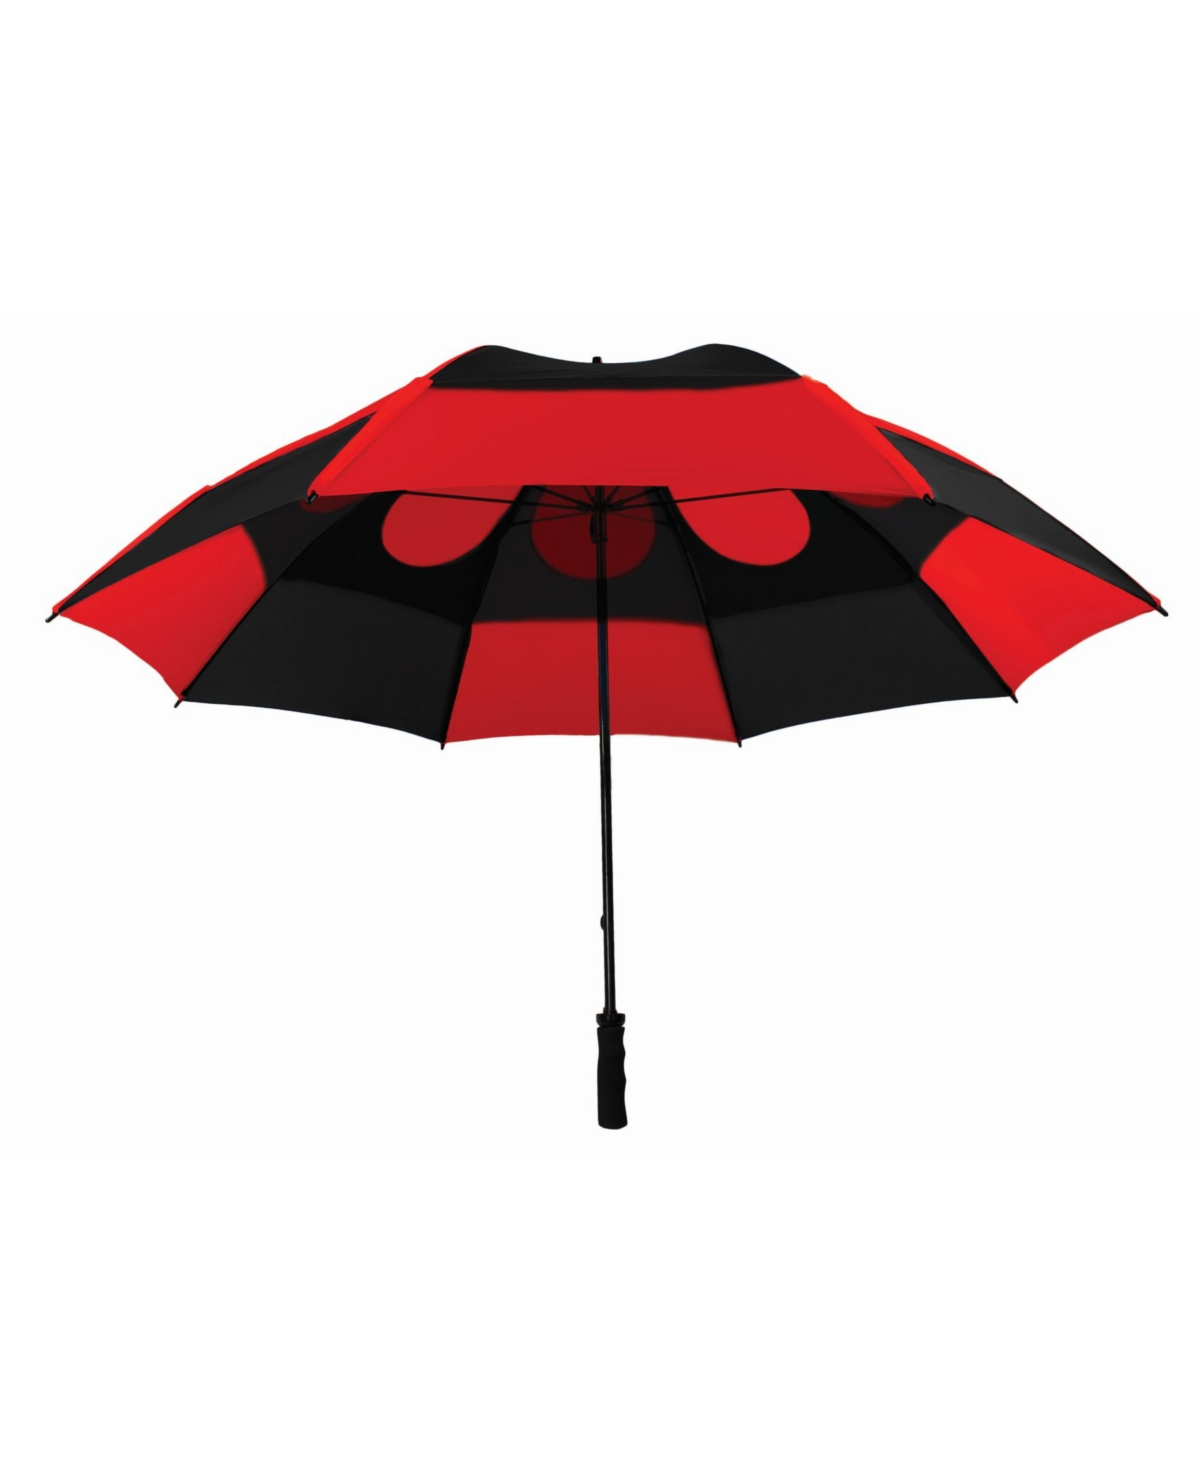 Gustbuster Wind Resistant Double Canopy Golf Umbrella